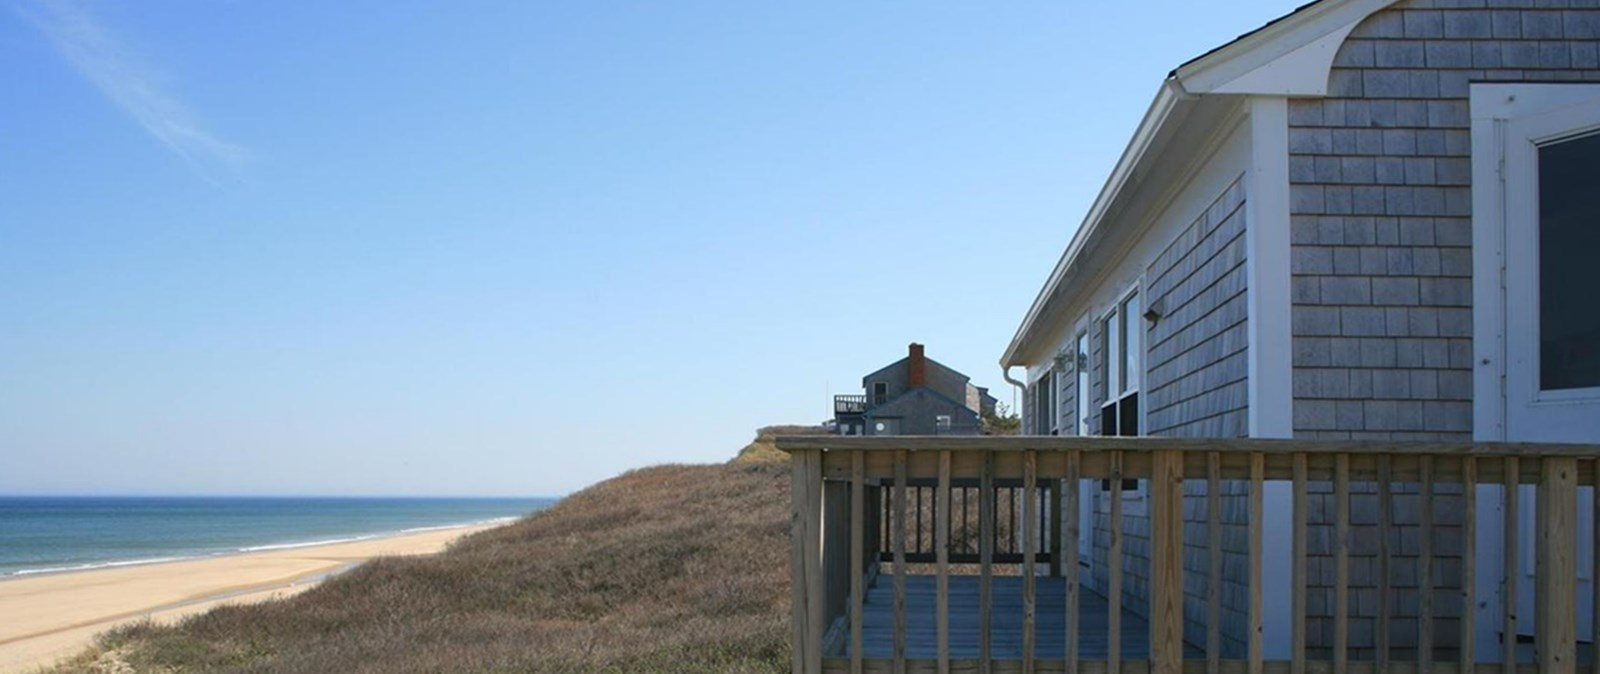 Cape Cod, Martha's Vineyard and Nantucket are beautiful, peaceful, and rejuvenating place to spend New Year's Day.